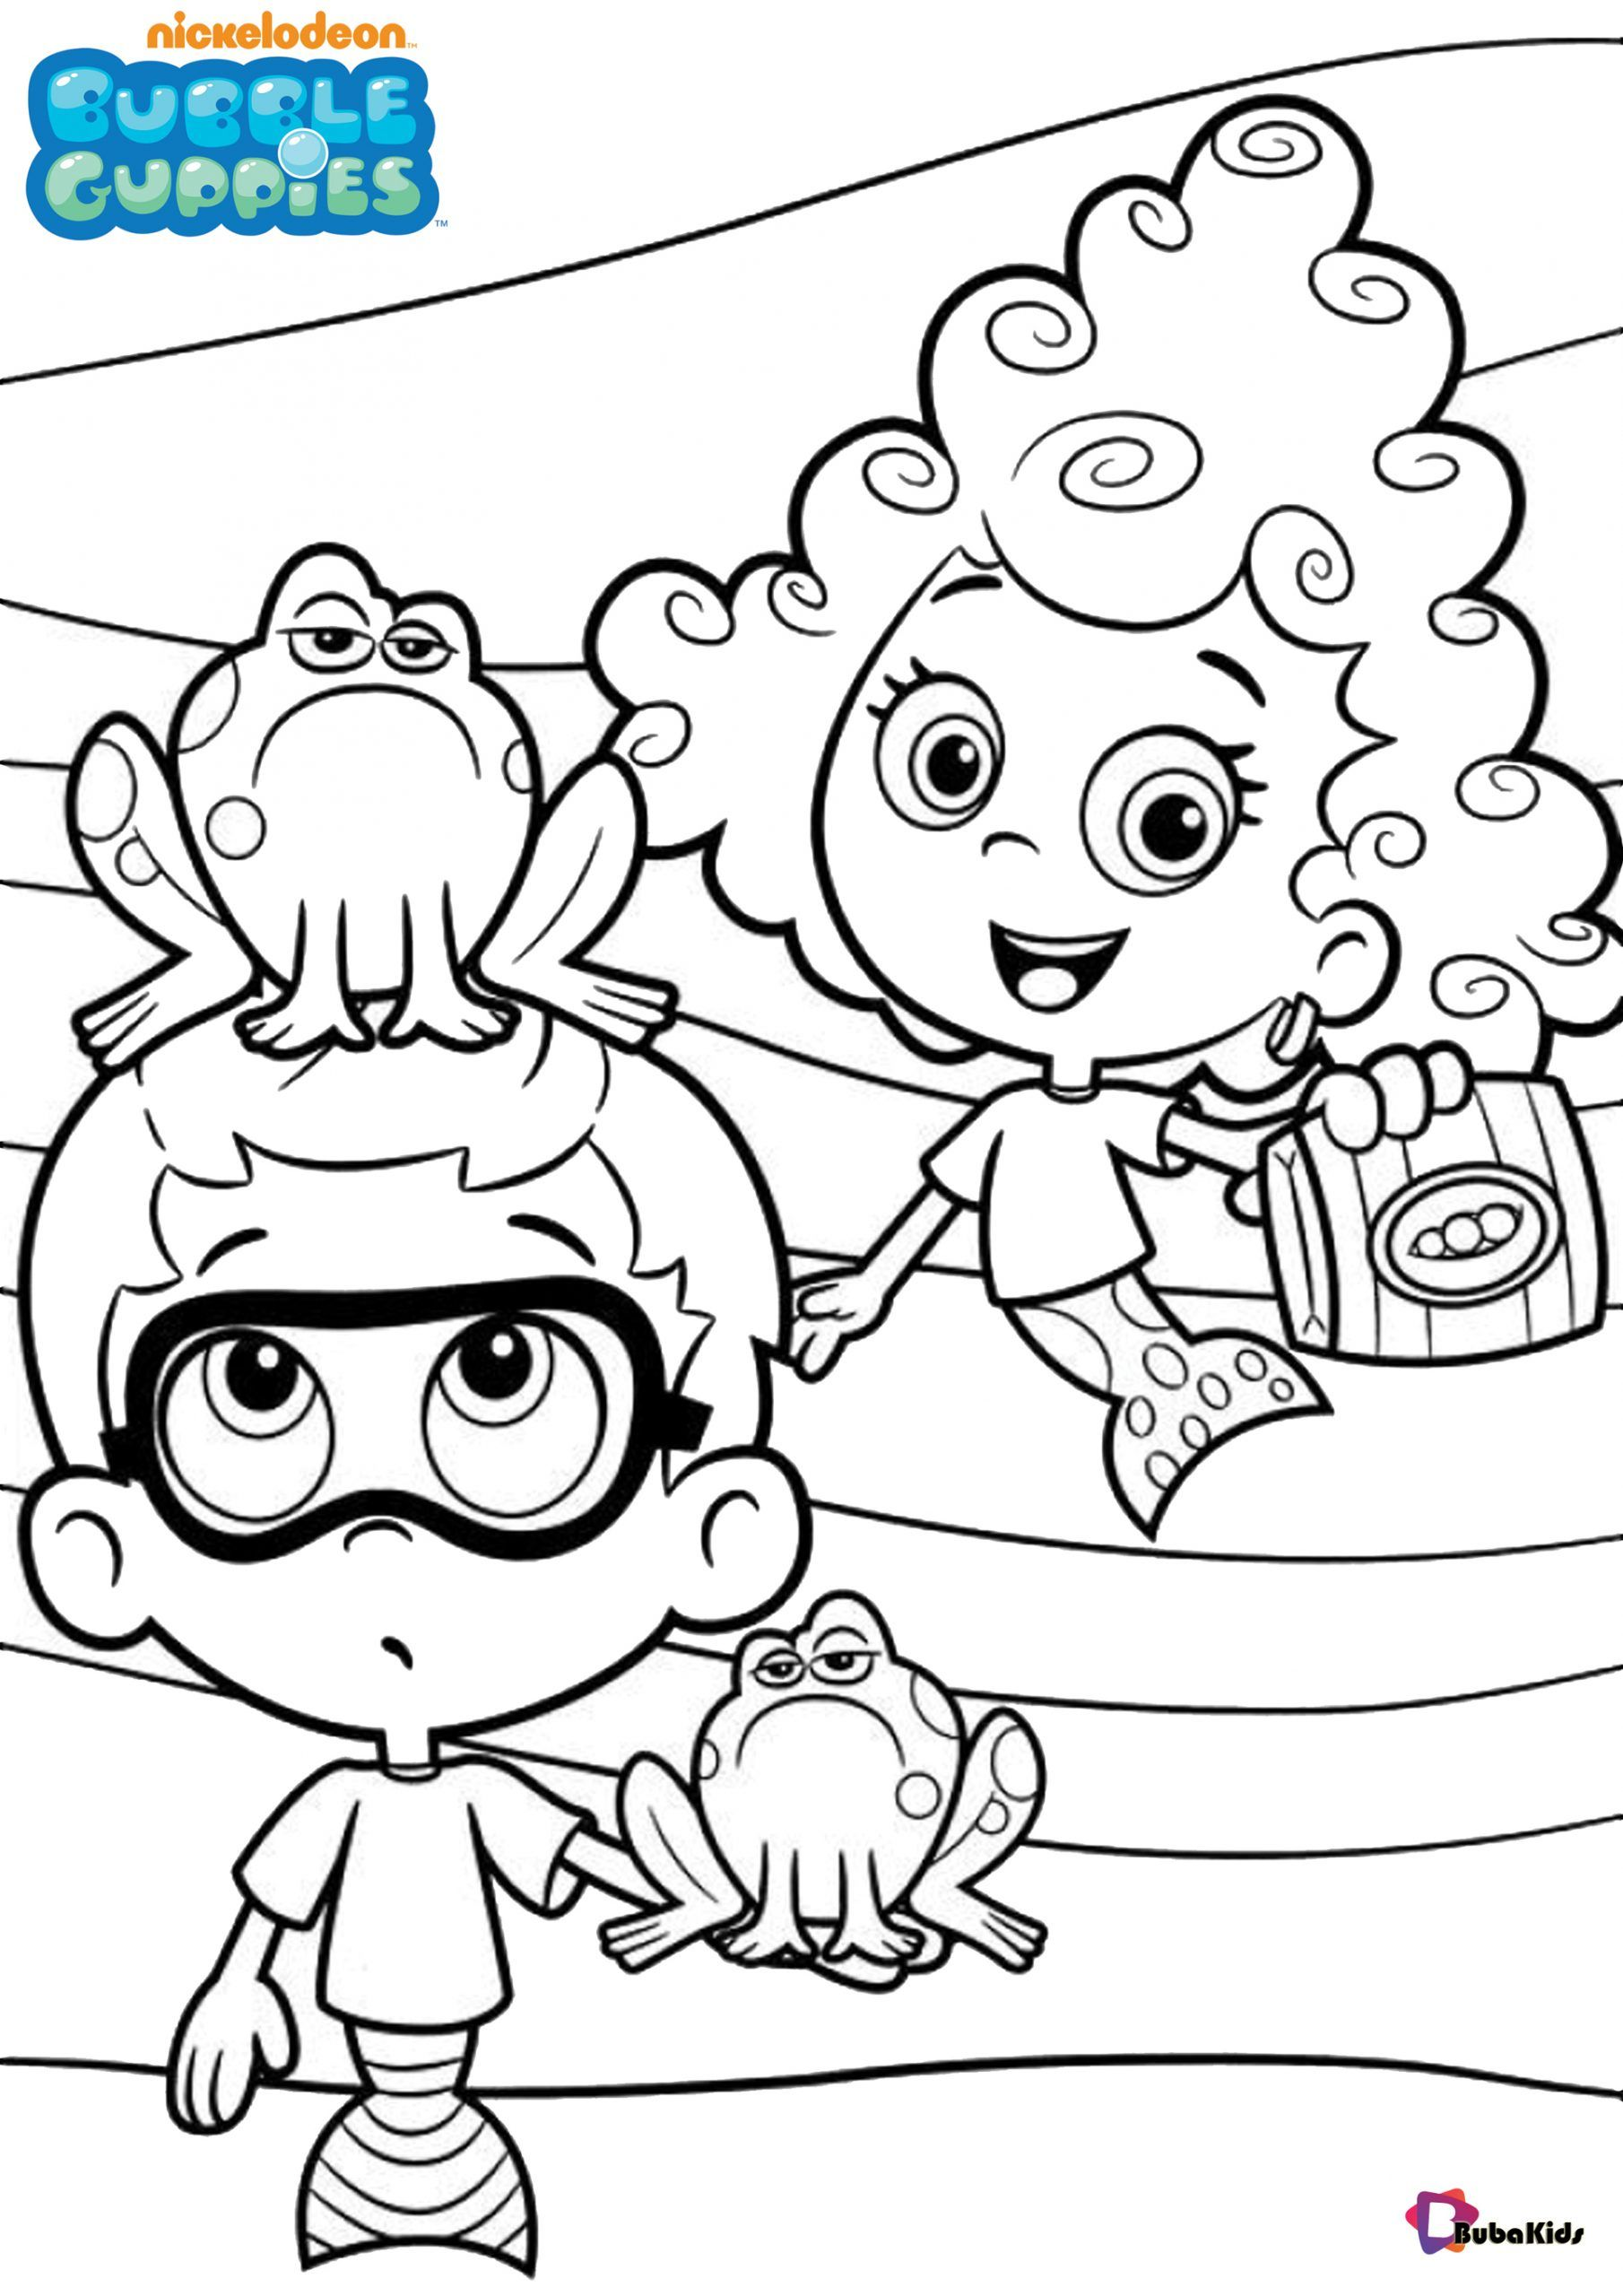 Free Download Bubble Guppies Coloring Pages Collection Of Cartoon Coloring Pages For Bubble Guppies Coloring Pages Puppy Coloring Pages Cartoon Coloring Pages